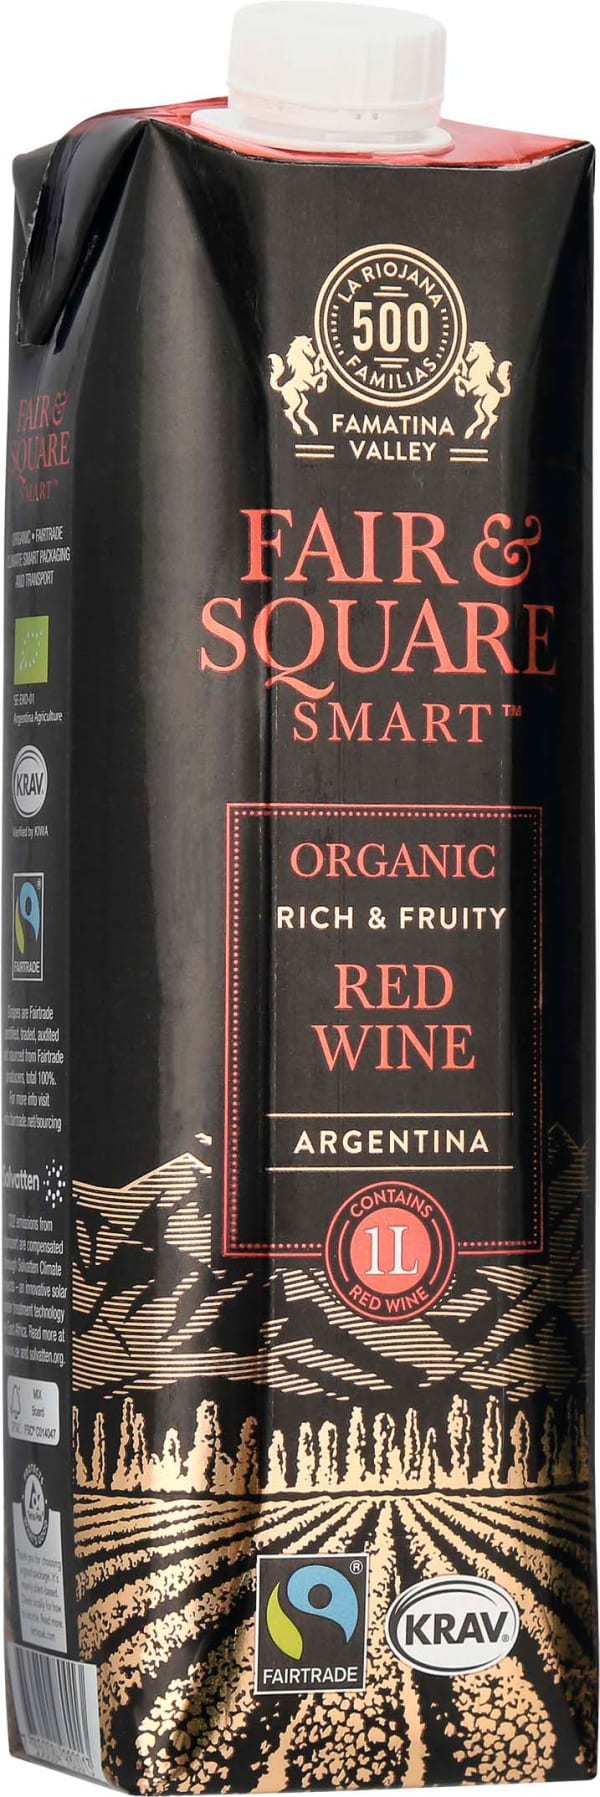 Fair & Square Red 2020 carton package